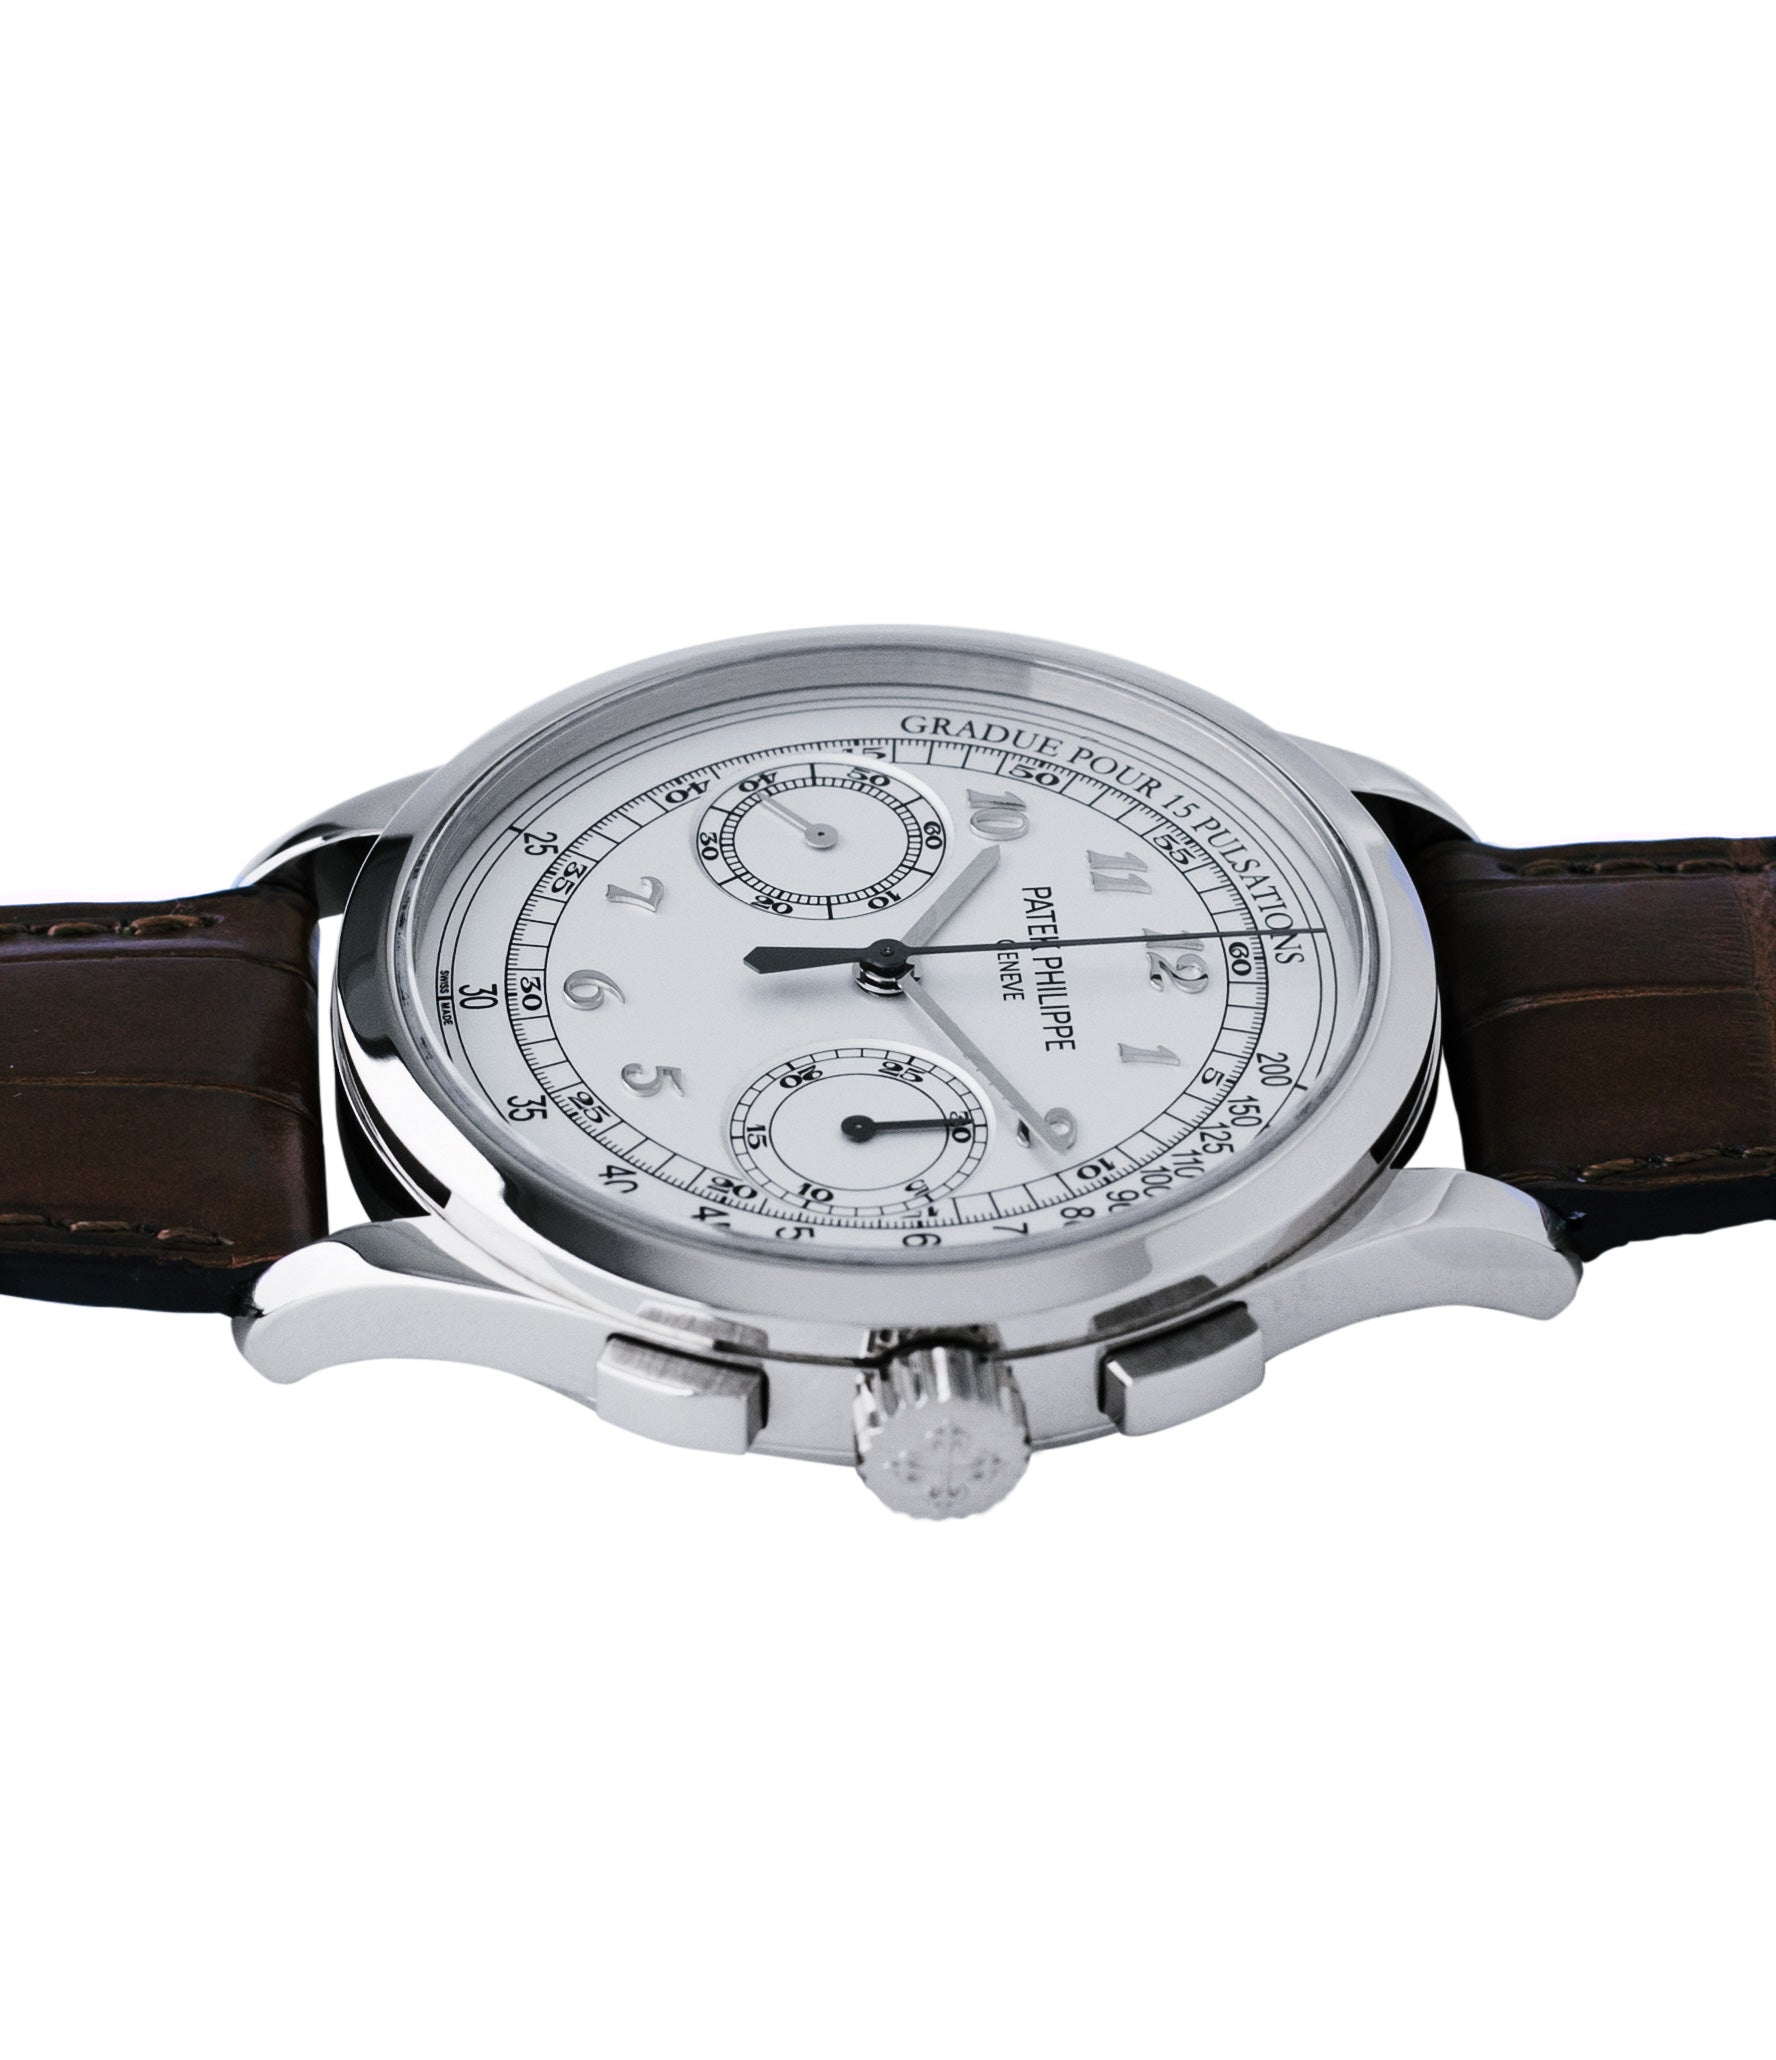 for sale Patek Philippe 5170 grey gold dress Chronograph Pulsation Scale preowned watch at A Collected Man London rare watch specialist in United Kingdom